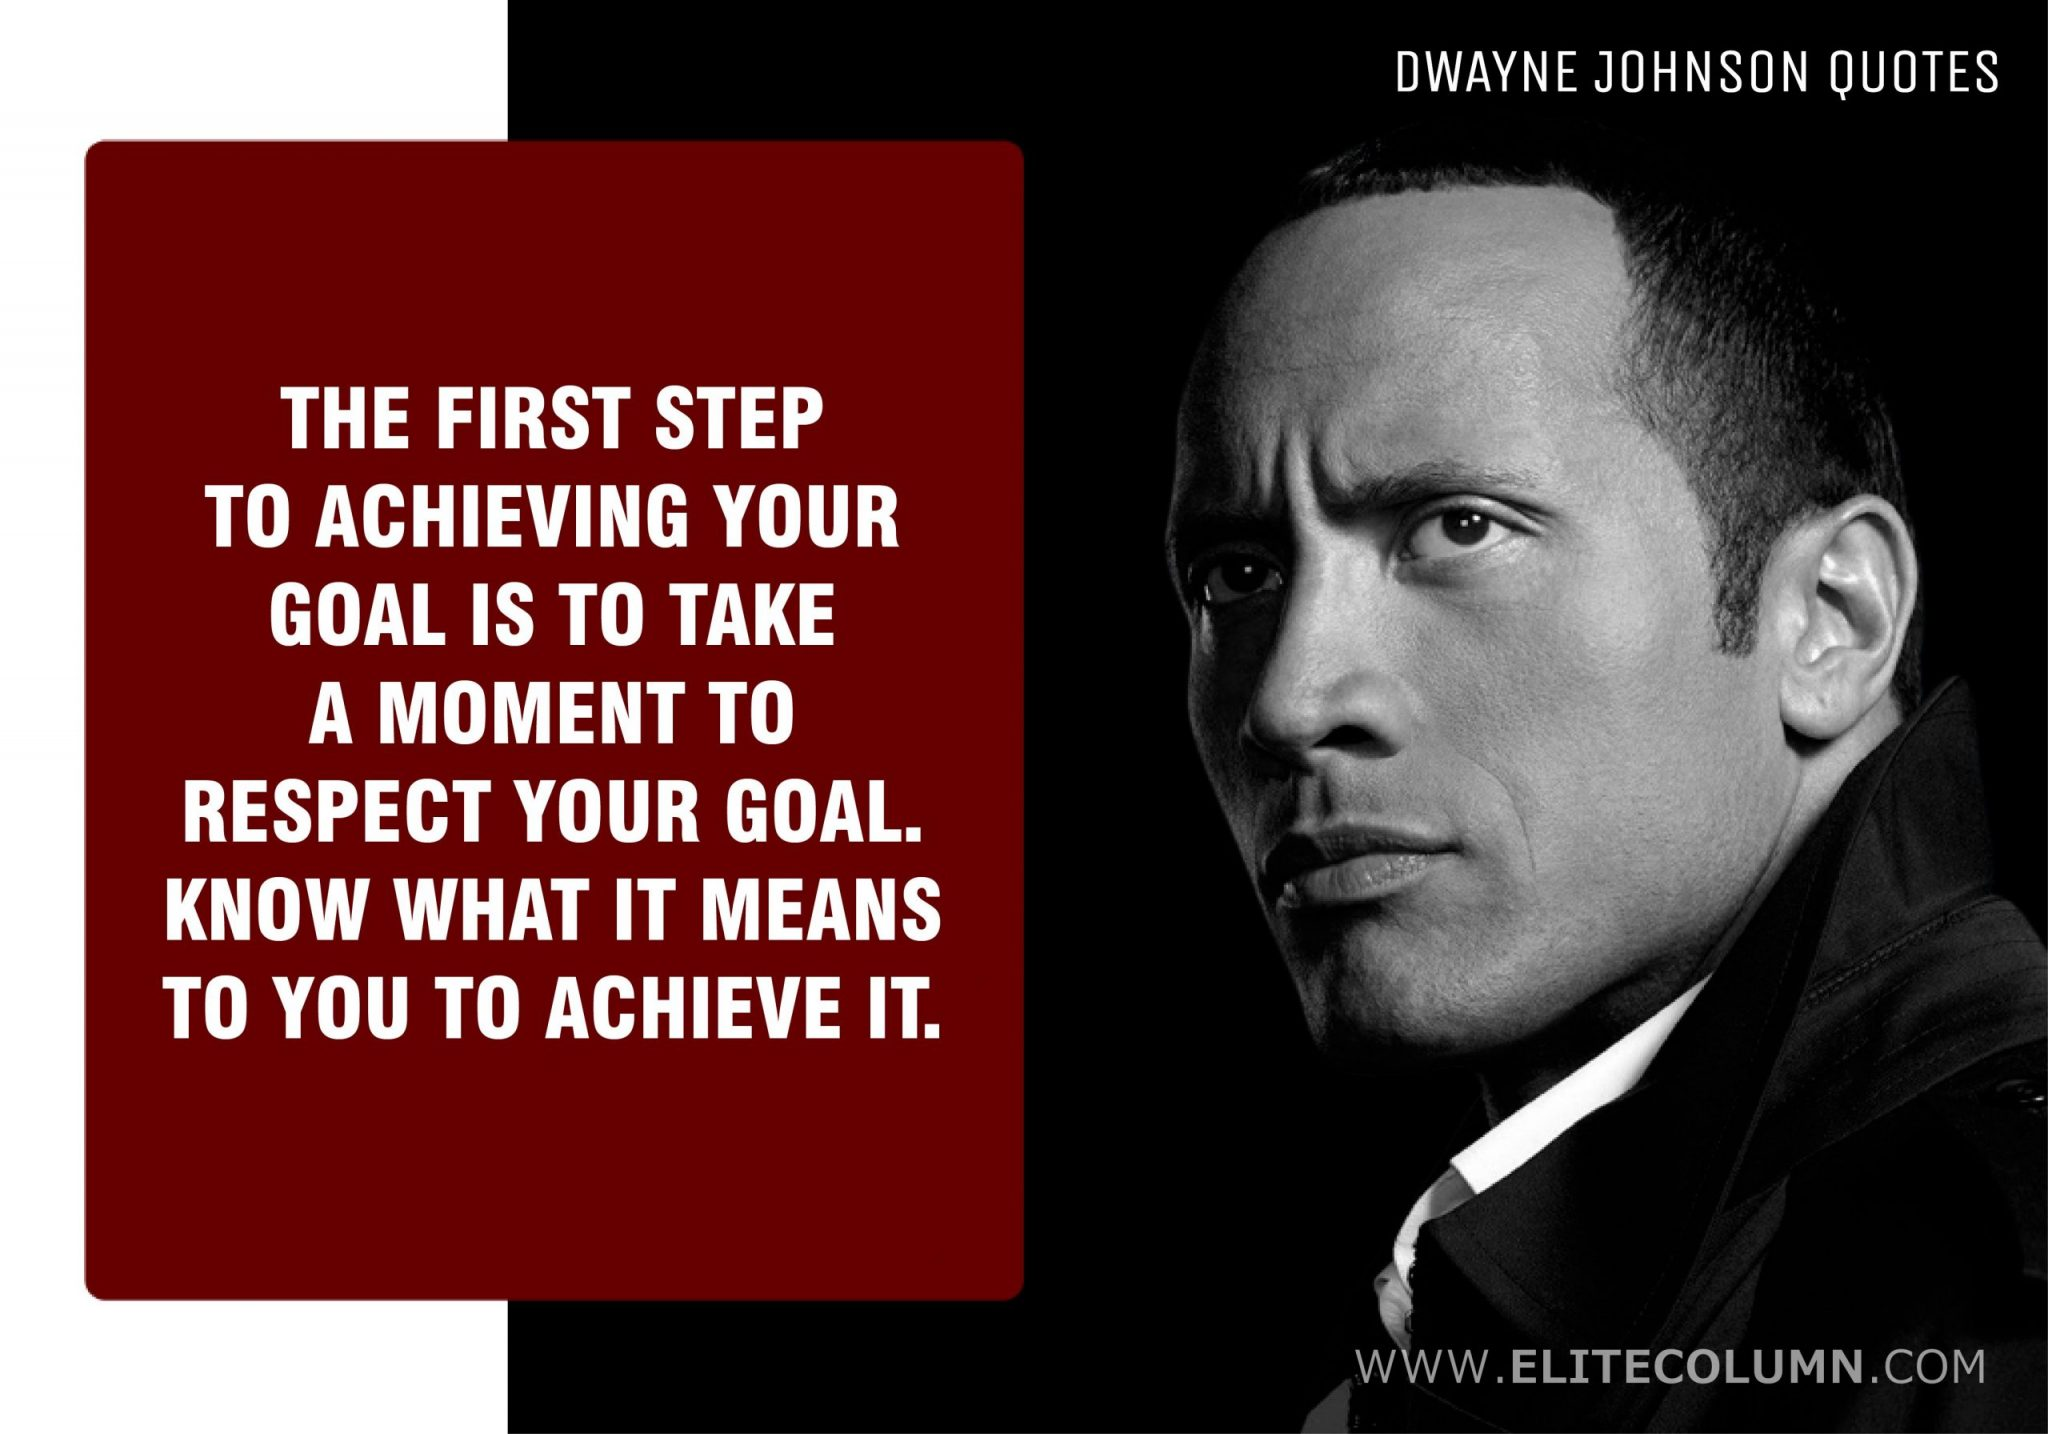 Dwayne Johnson Quotes (5)